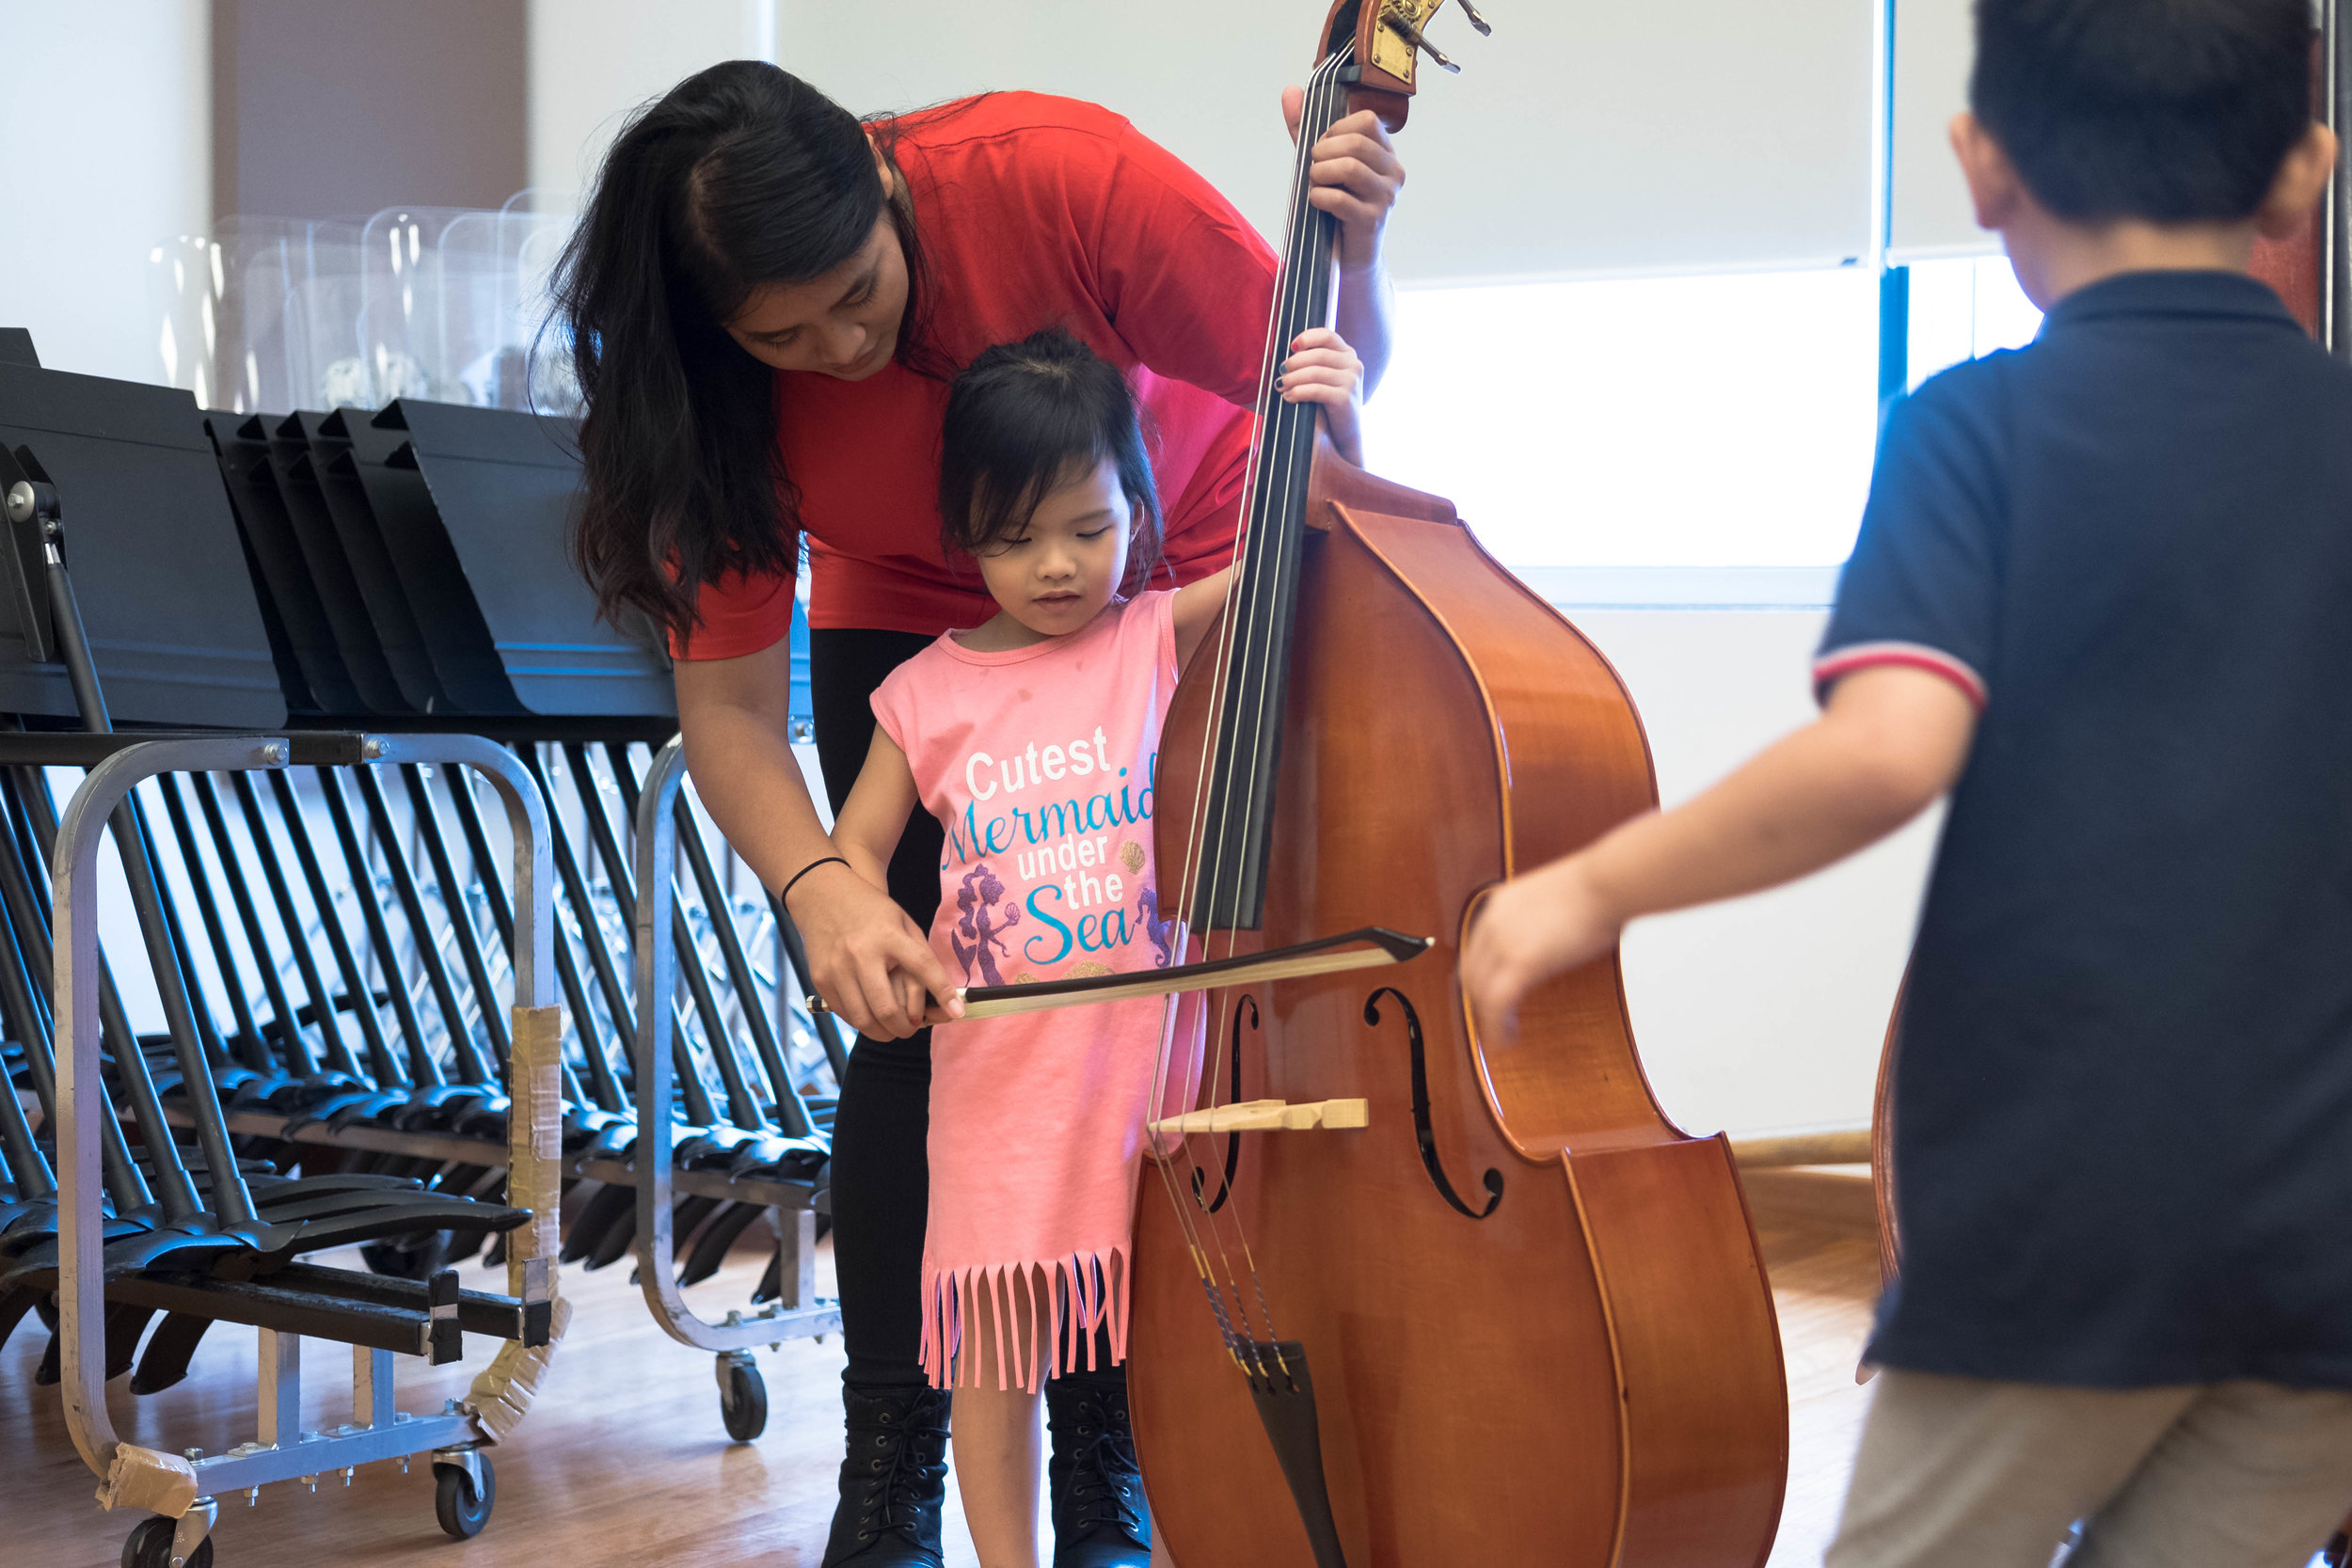 Year 3 student Dahlia Neniel introducing the double bass to a young participant